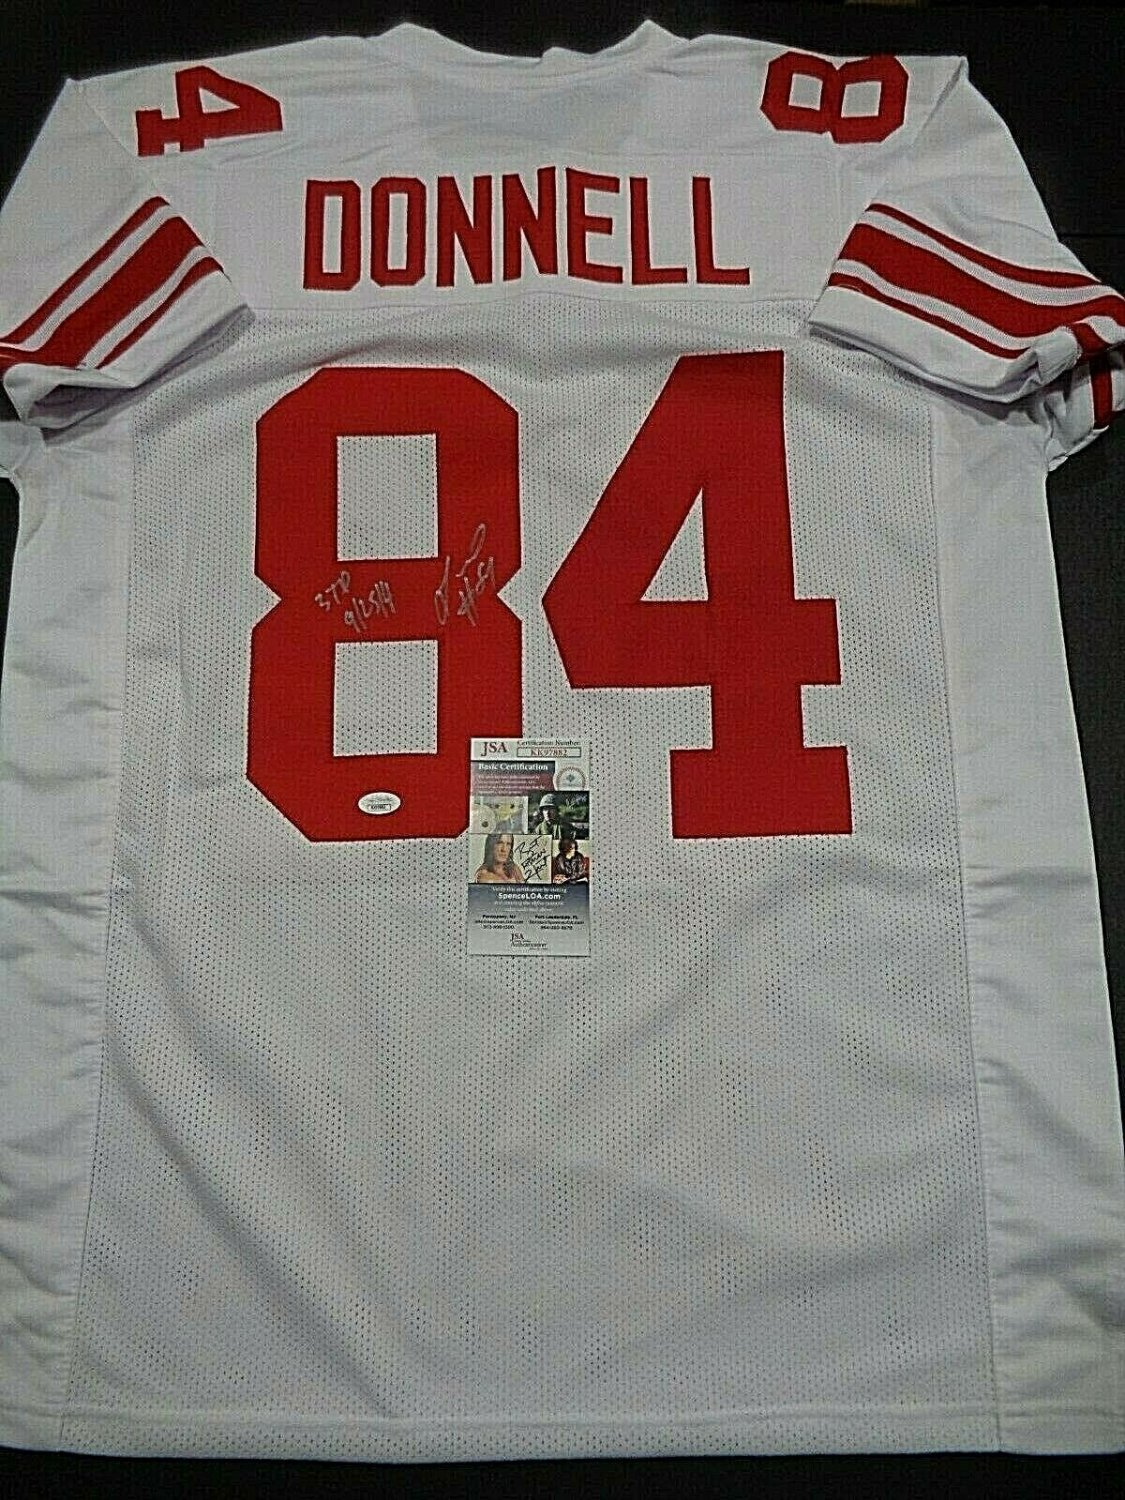 Larry Donnell Autographed Signed New York Giants Jersey Inscrip ...